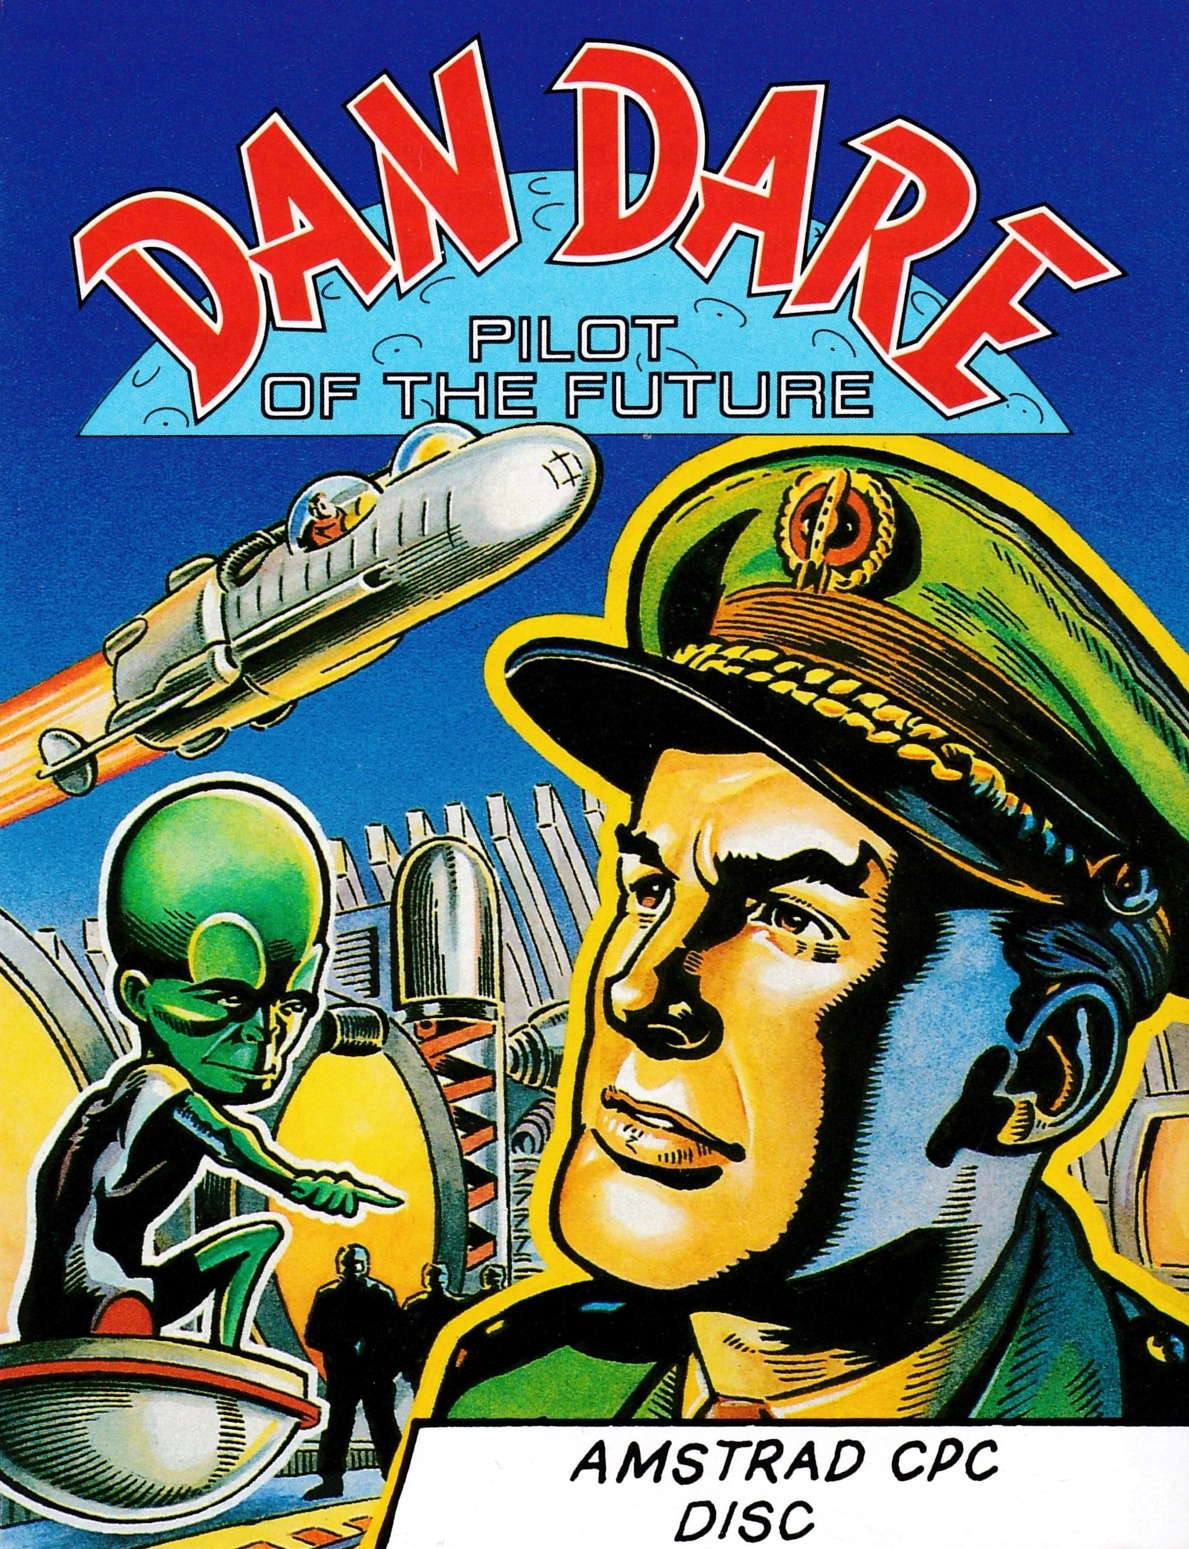 cover of the Amstrad CPC game Dan Dare  by GameBase CPC